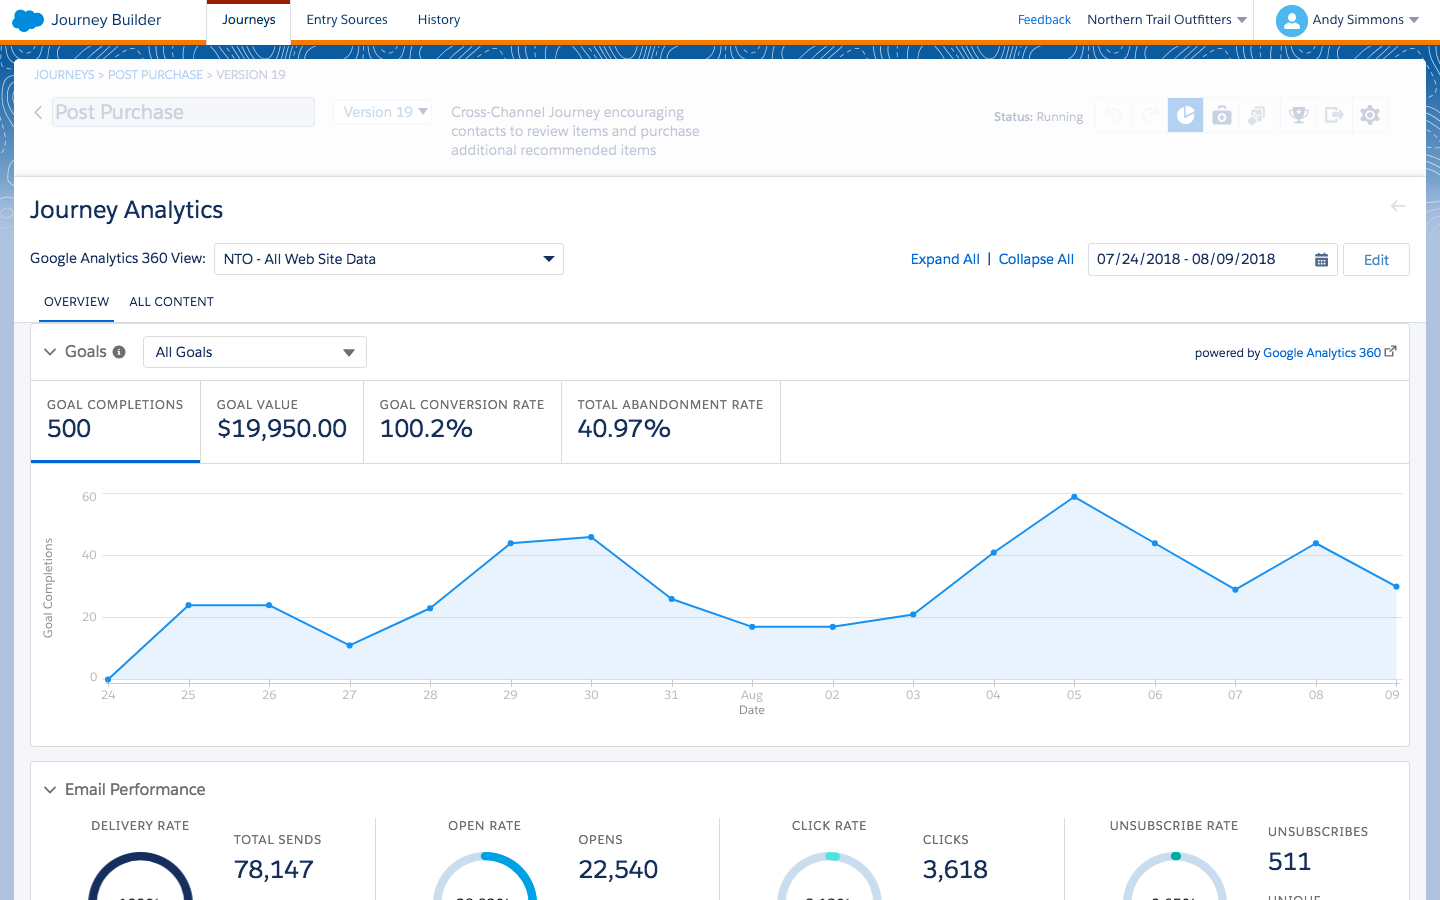 Journey Analytics Dashboard with Email Performance, Goals, and Site Usage Tiles